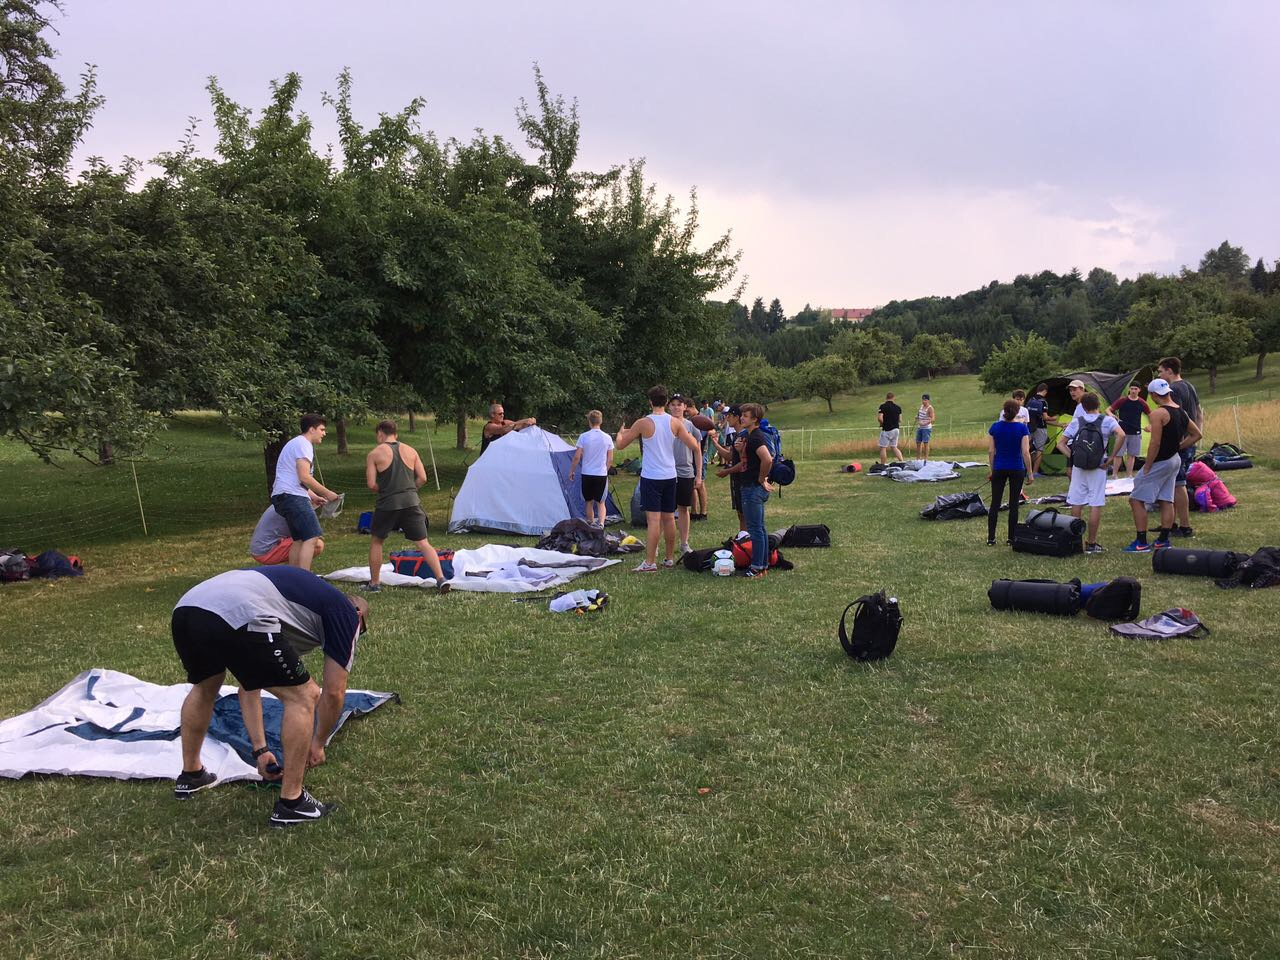 Steelers U19 im Teambuilding-Trainingslager Bild